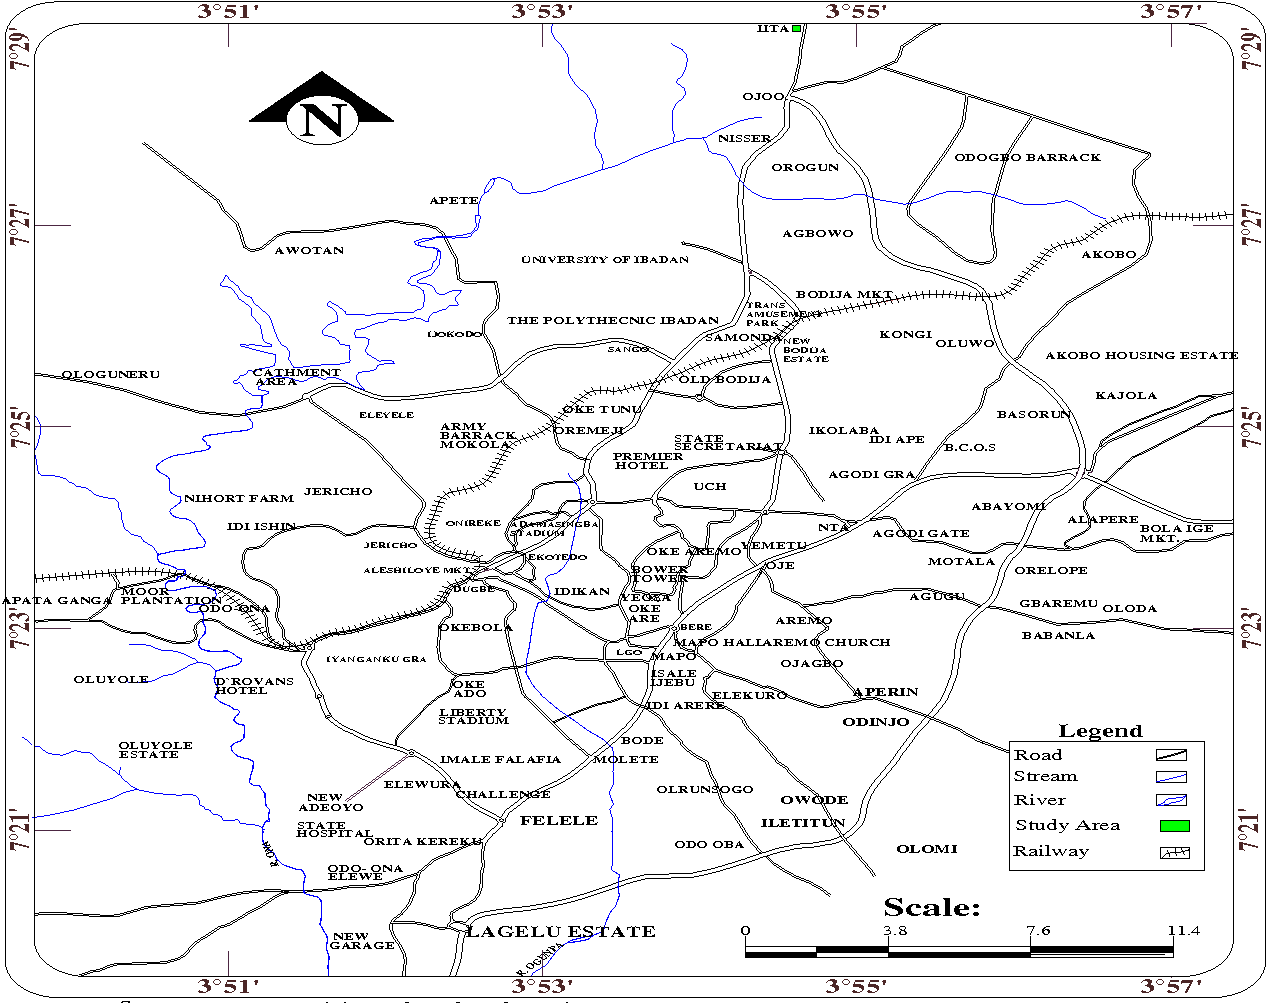 Map Of Ibadan City Figure 1 from Susceptibility of Anopheles gambiae sensu lato